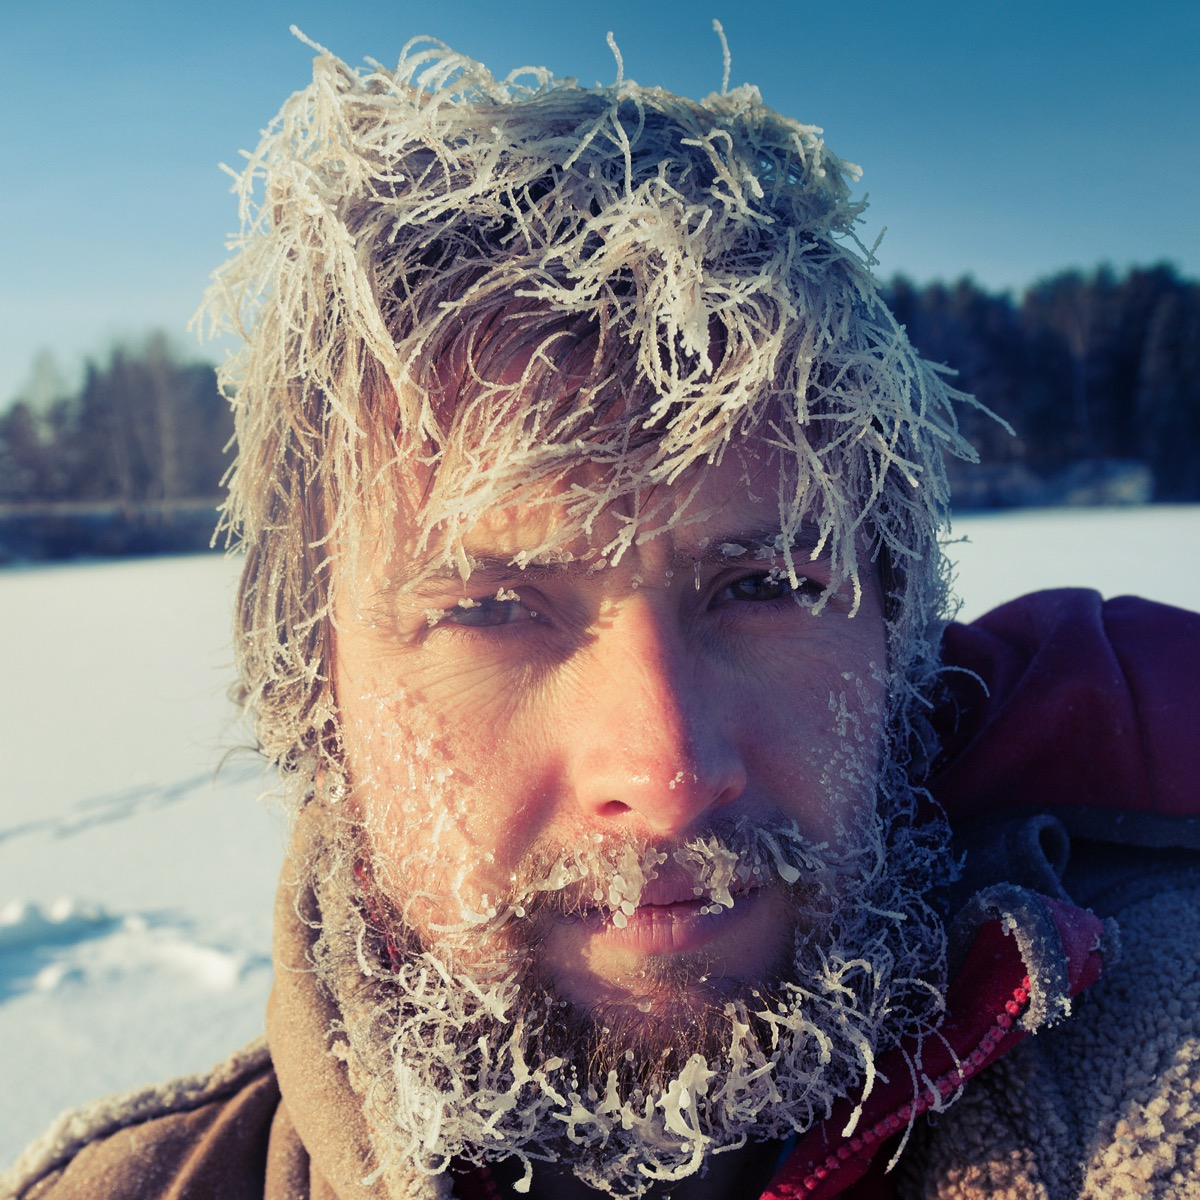 man with frozen hair